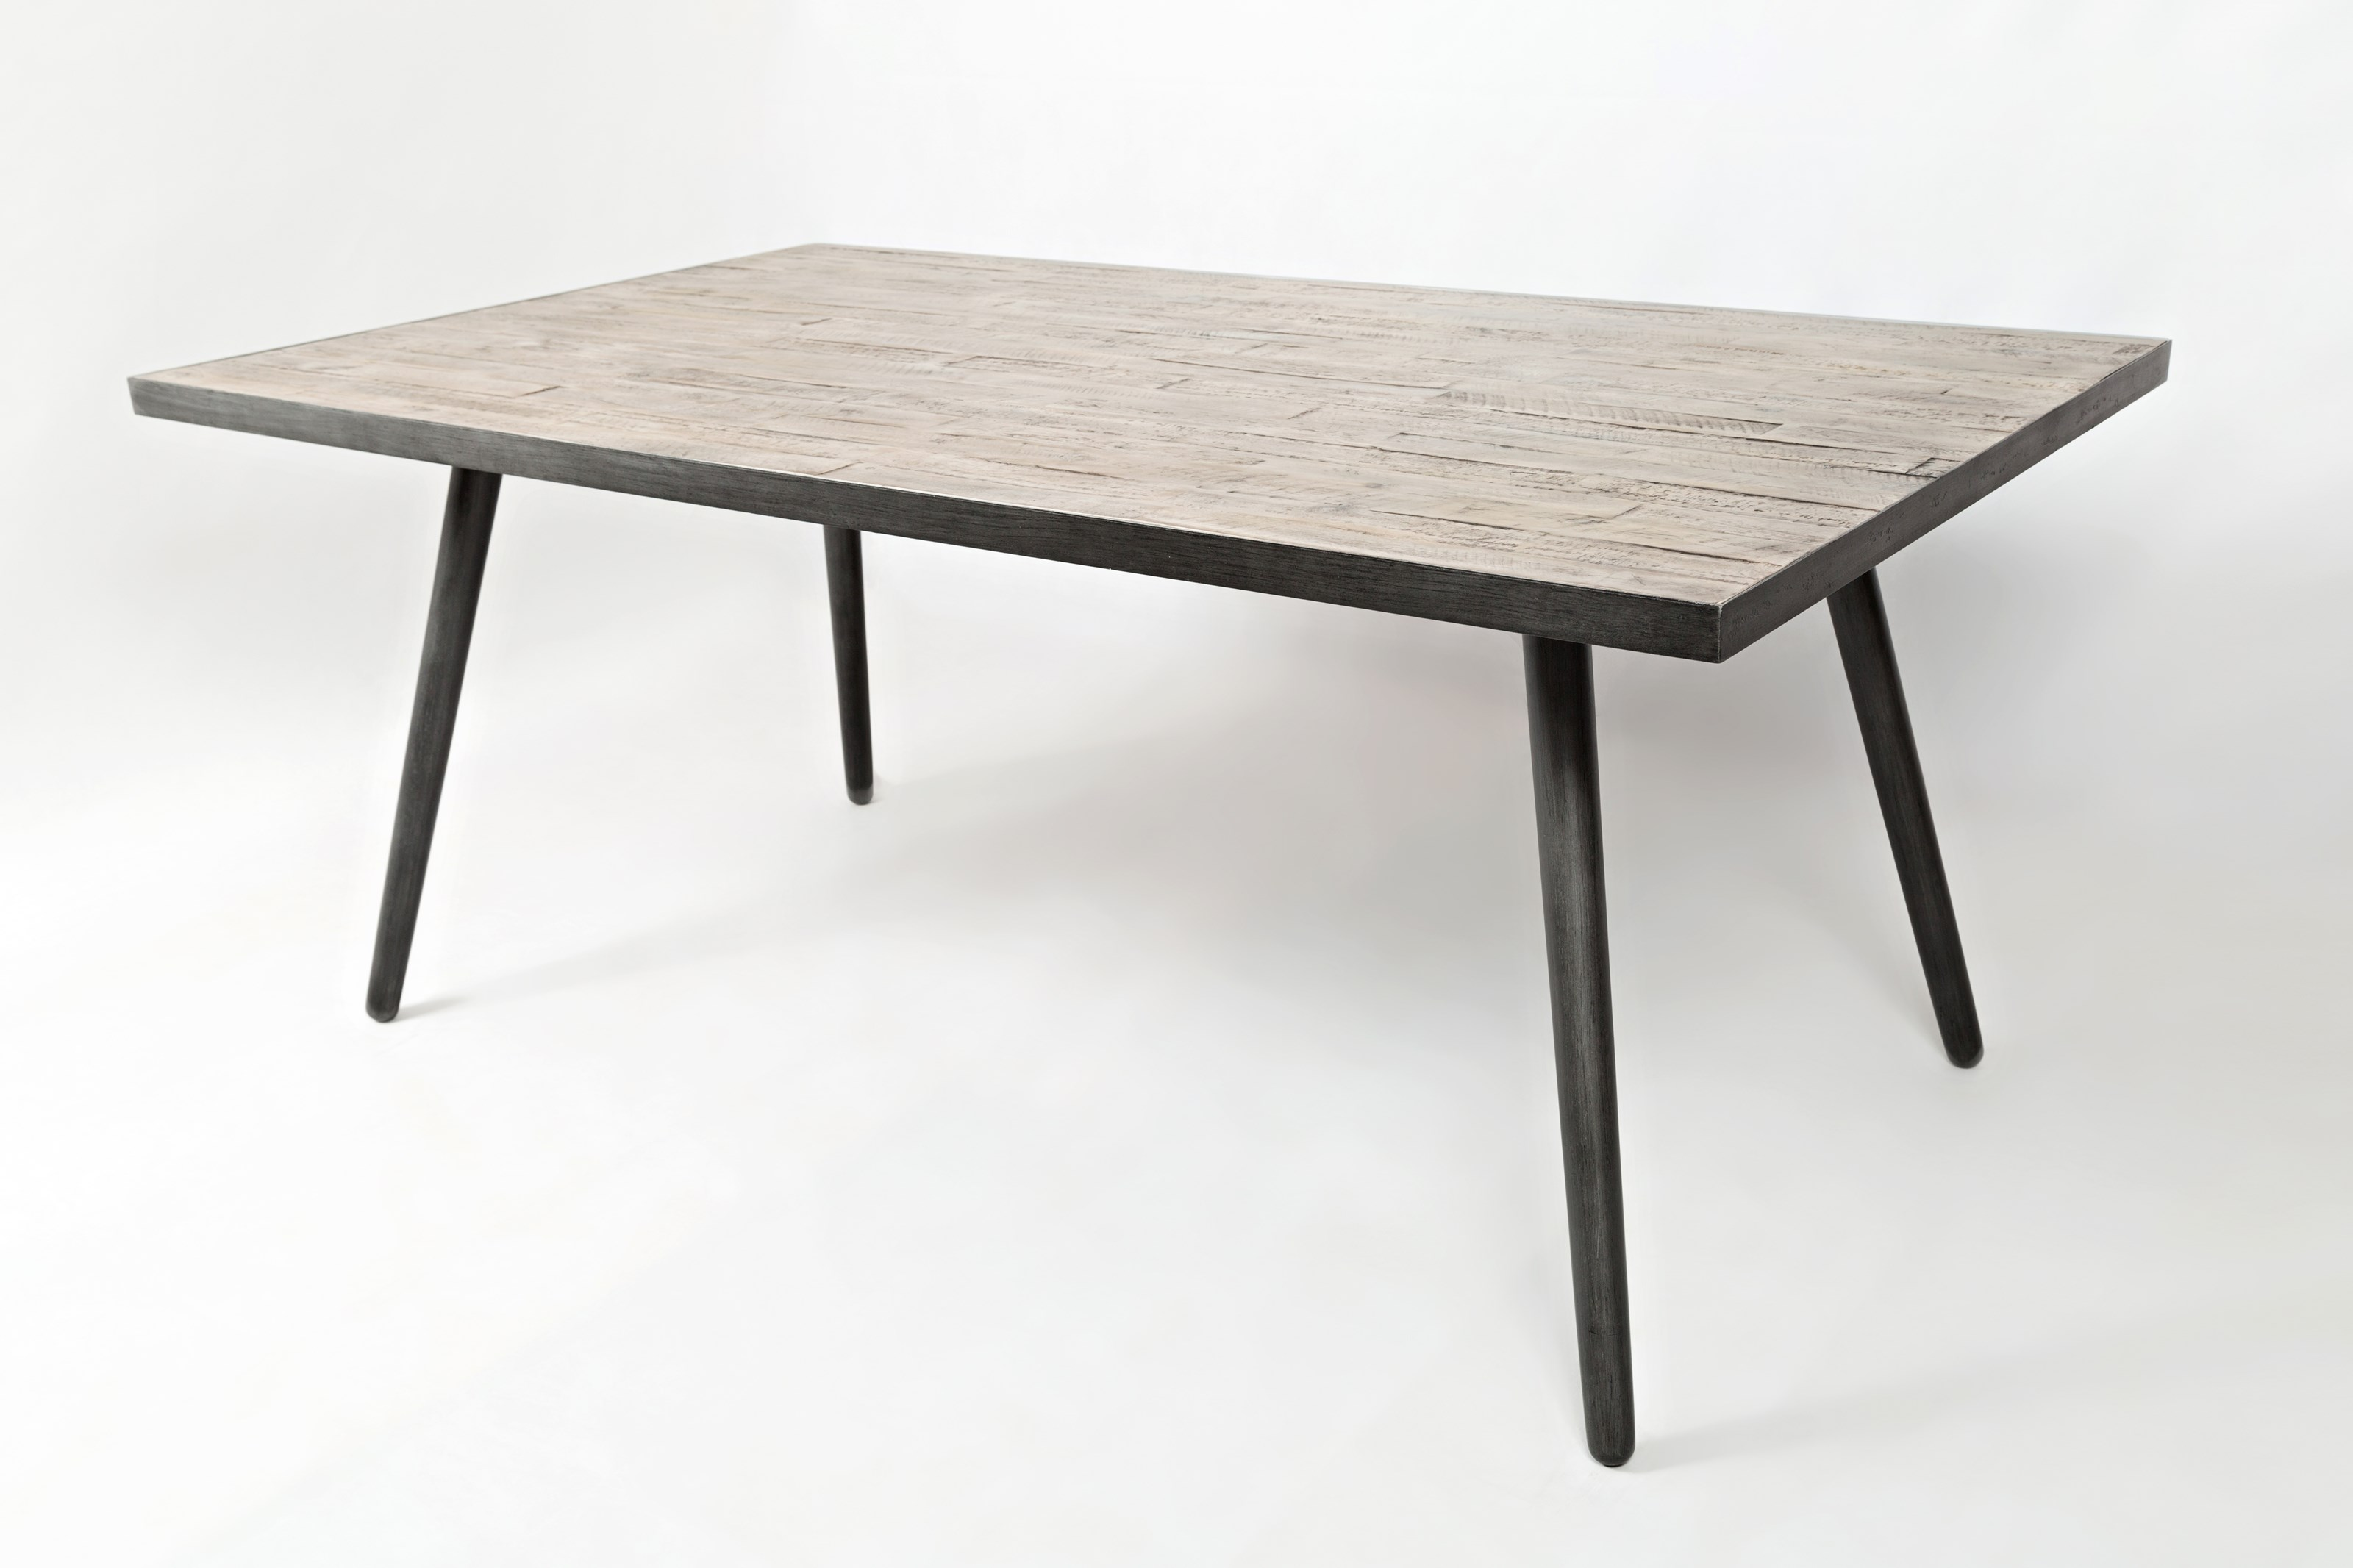 Jofran American Retrospective Dining Table A1 Furniture